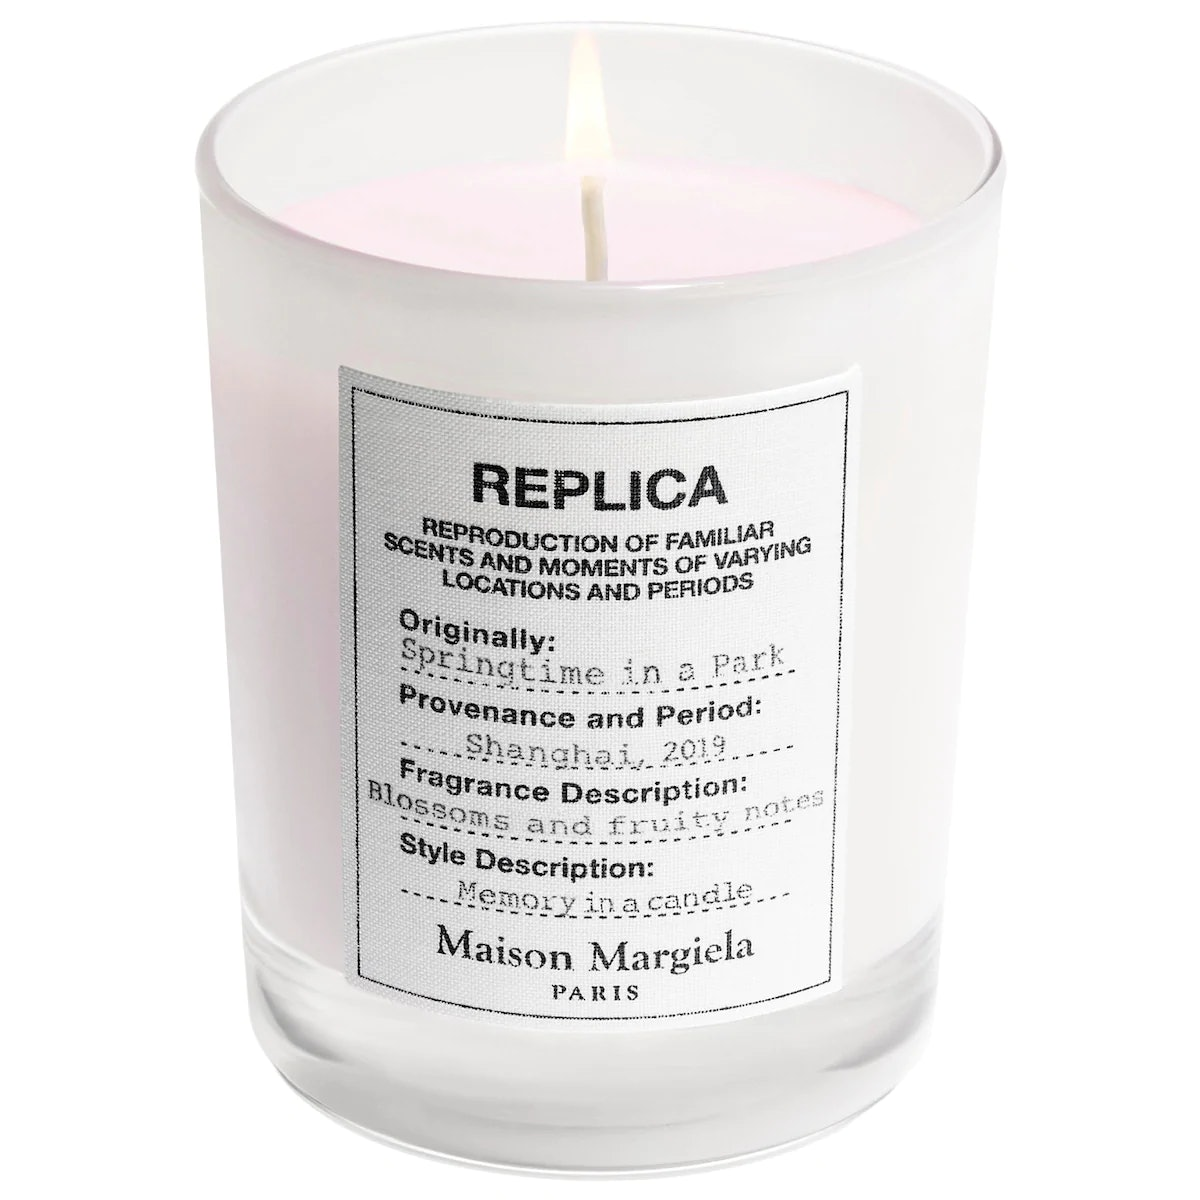 'REPLICA' Springtime in a Park Scented Candle